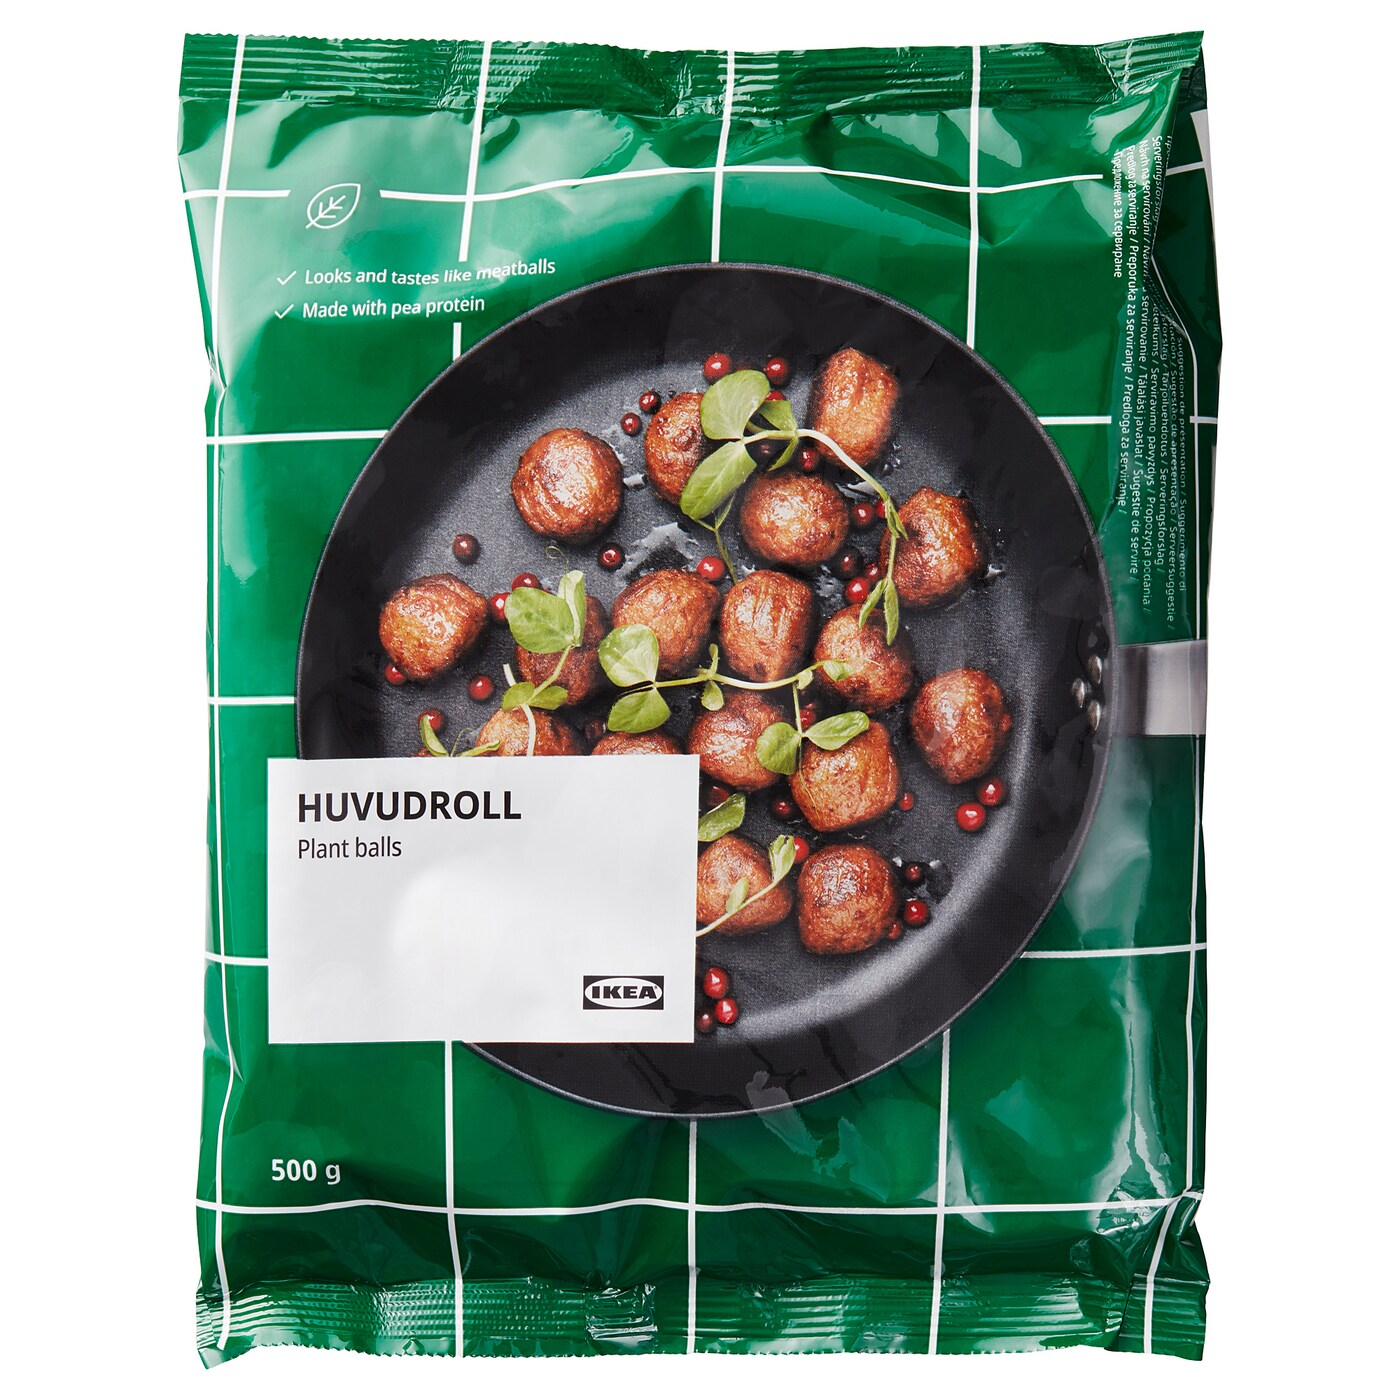 Ikea are about to drop a plant based meatball in Australia